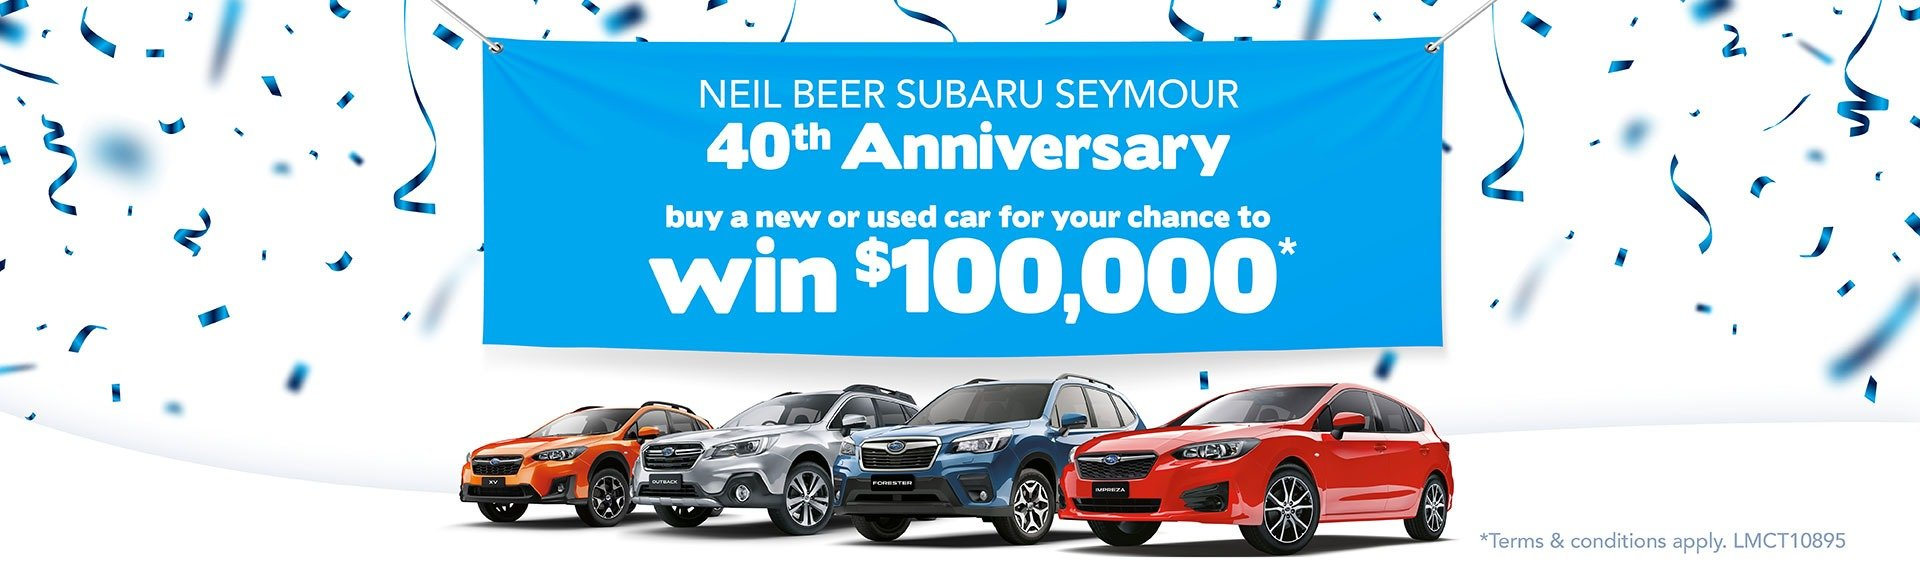 Beer Auto Group Seymour 40th Anniversary $100,0000 Giveaway